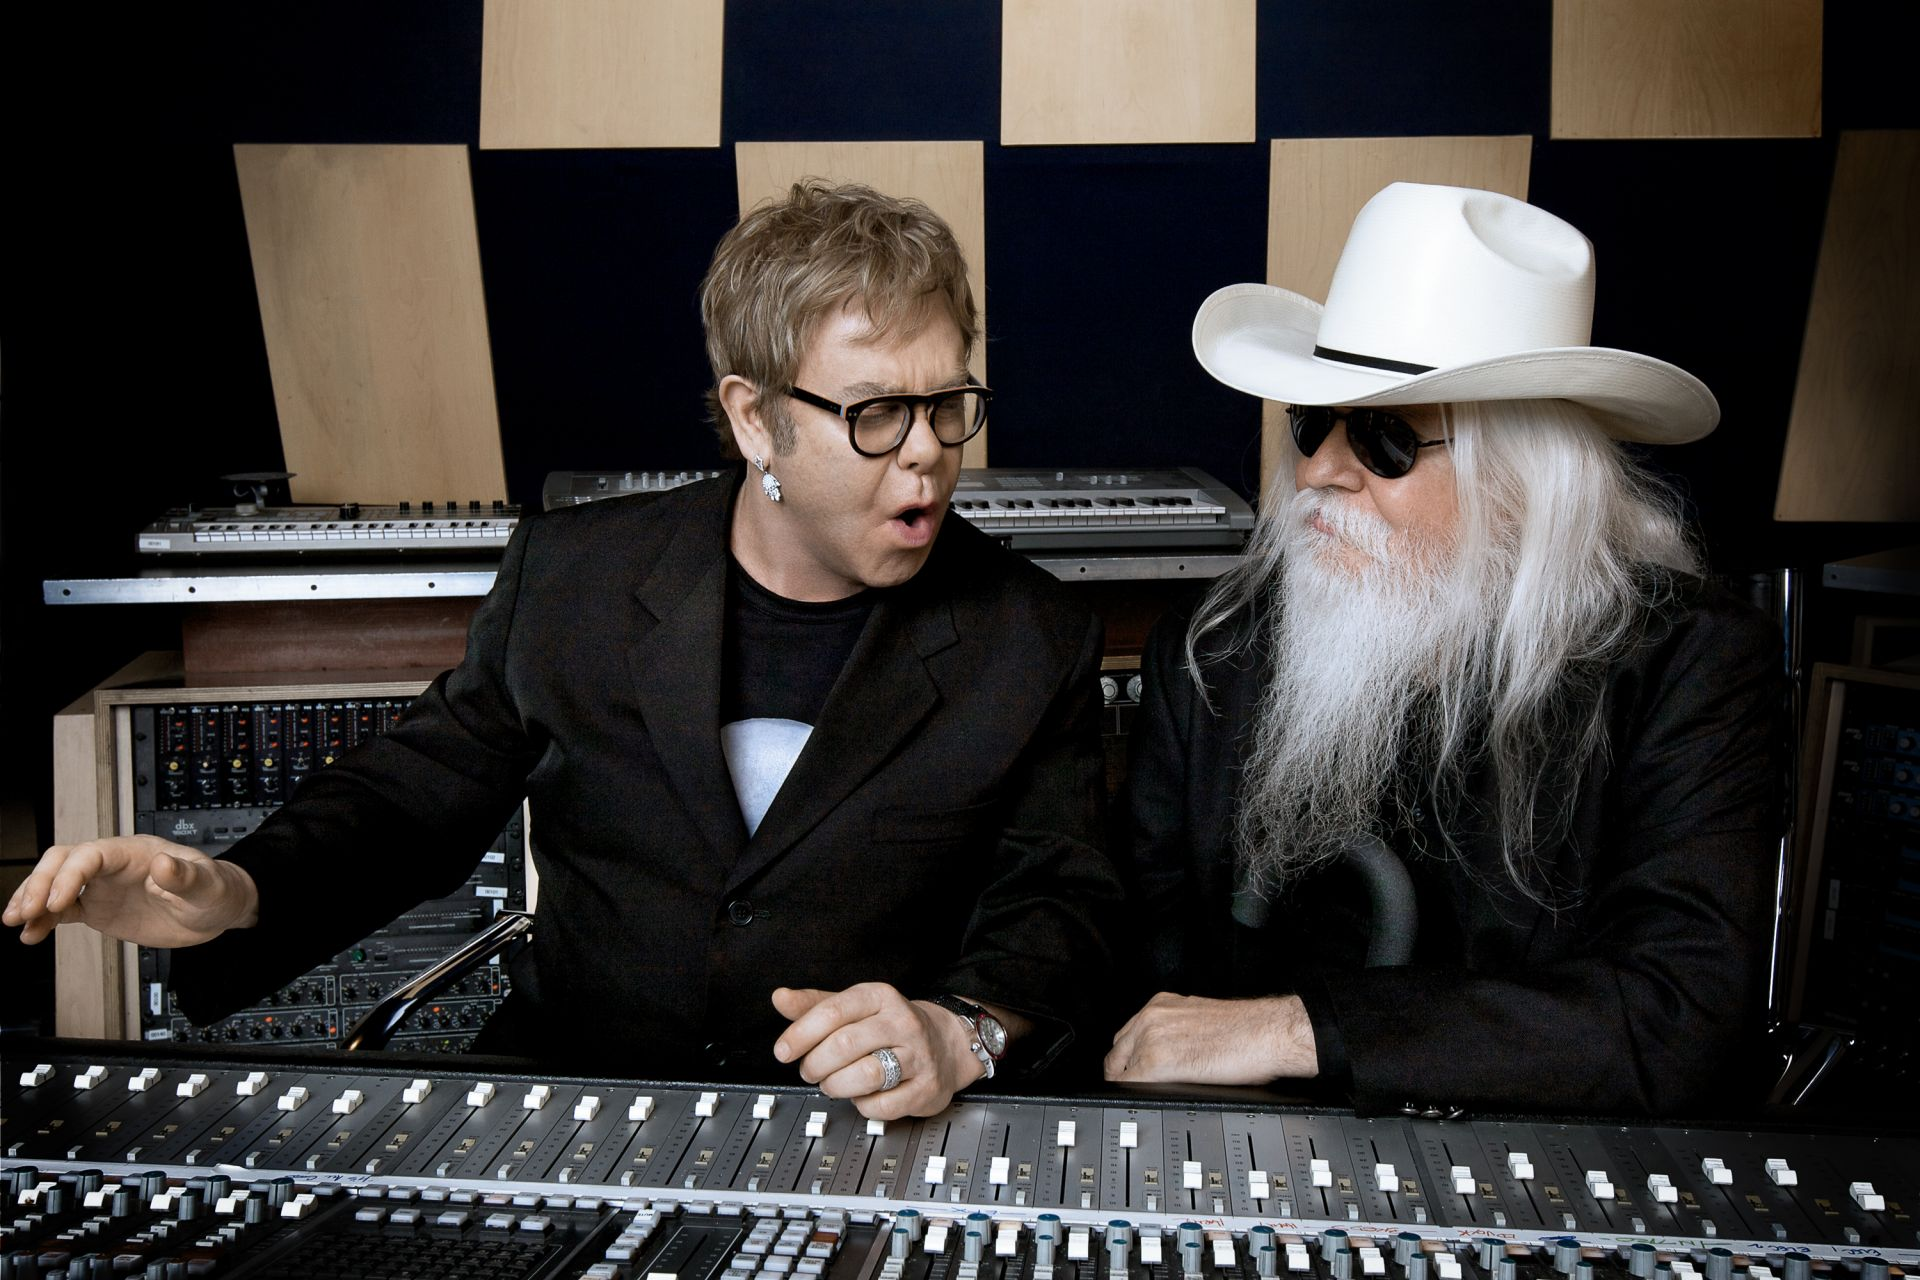 Elton and Leon in the studio, 2010. (Photo: Joseph Guay)